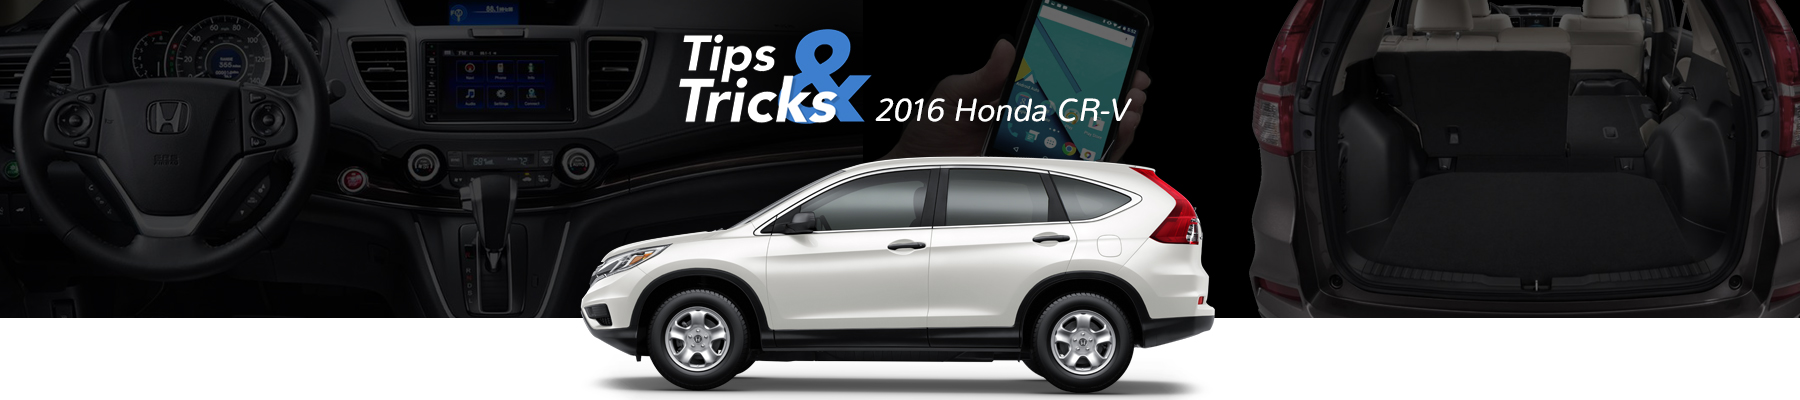 Honda CR-V Tips And Tricks